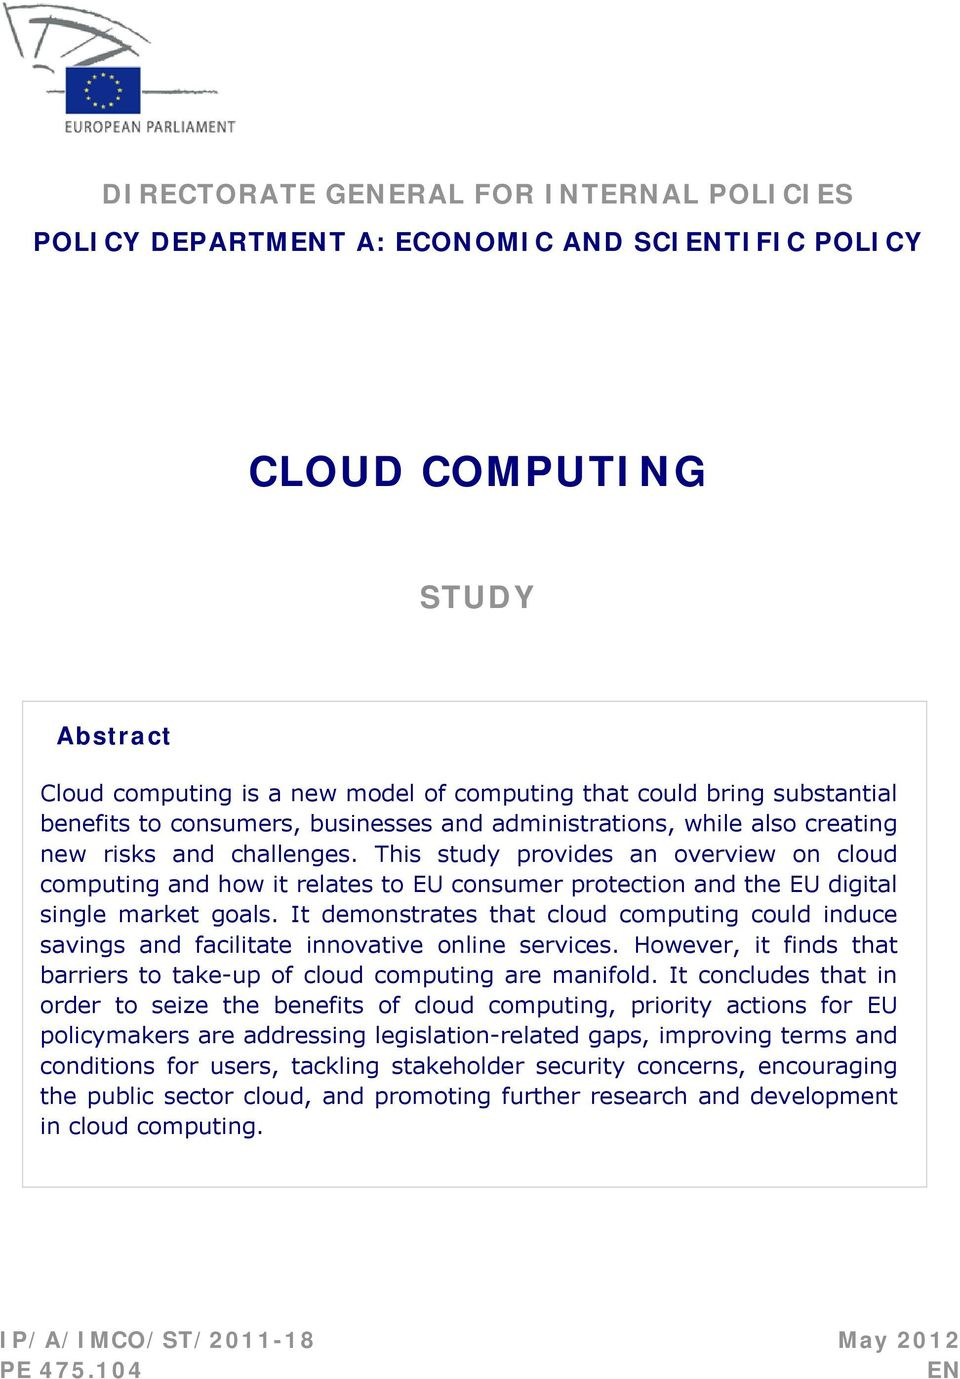 This study provides an overview on cloud computing and how it relates to EU consumer protection and the EU digital single market goals.